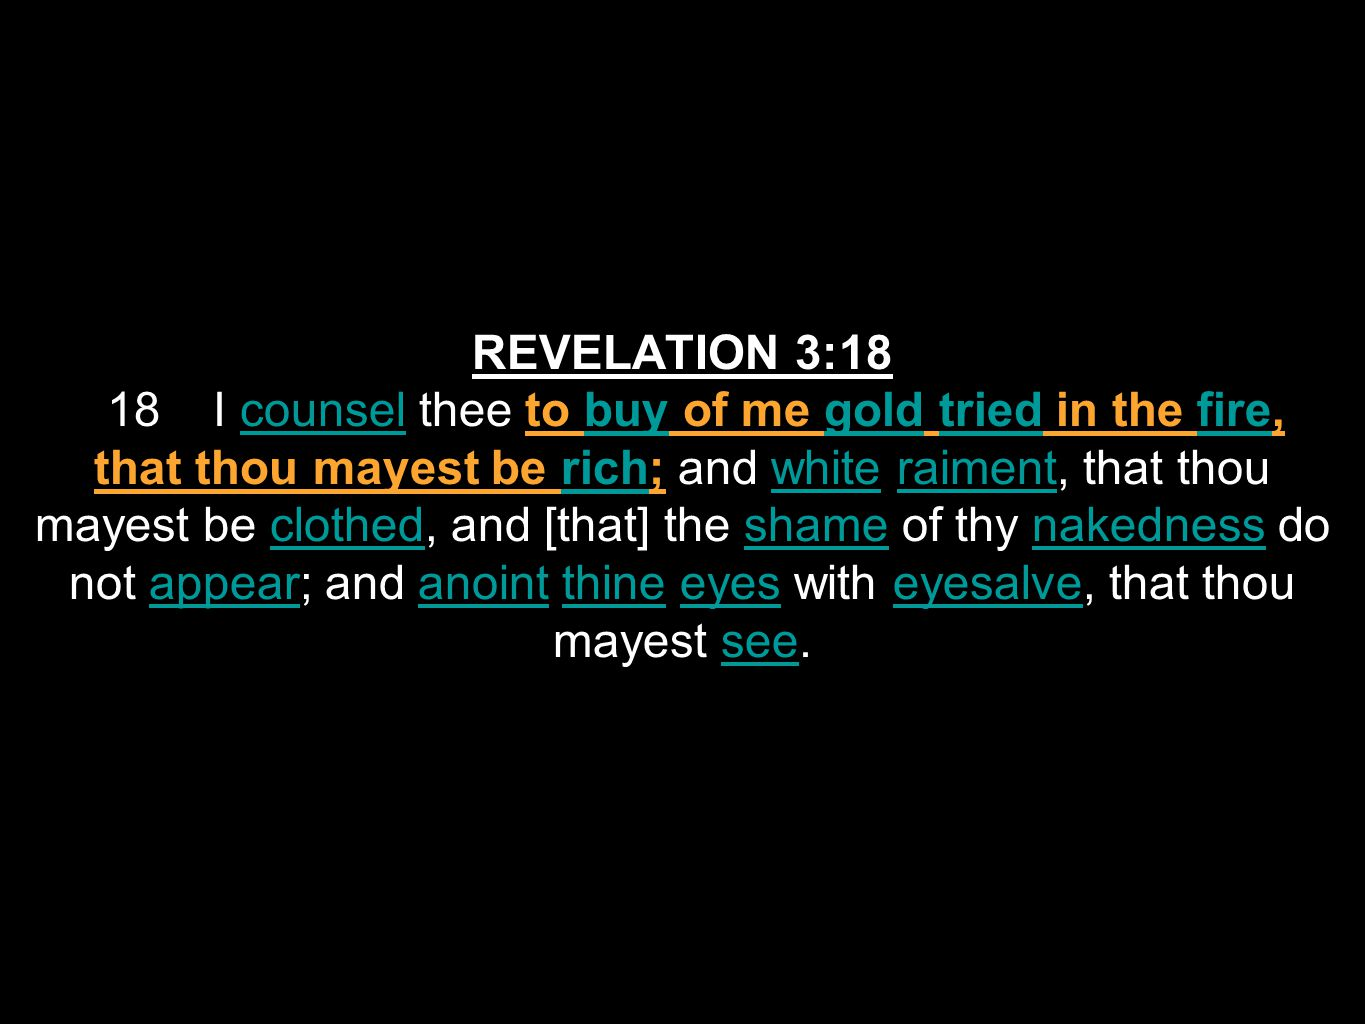 REVELATION 3:18 18 I counsel thee to buy of me gold tried in the fire, that thou mayest be rich; and white raiment, that thou mayest be clothed, and [that] the shame of thy nakedness do not appear; and anoint thine eyes with eyesalve, that thou mayest see.counselbuygoldtriedfirerichwhiteraimentclothedshamenakednessappearanointthineeyeseyesalvesee